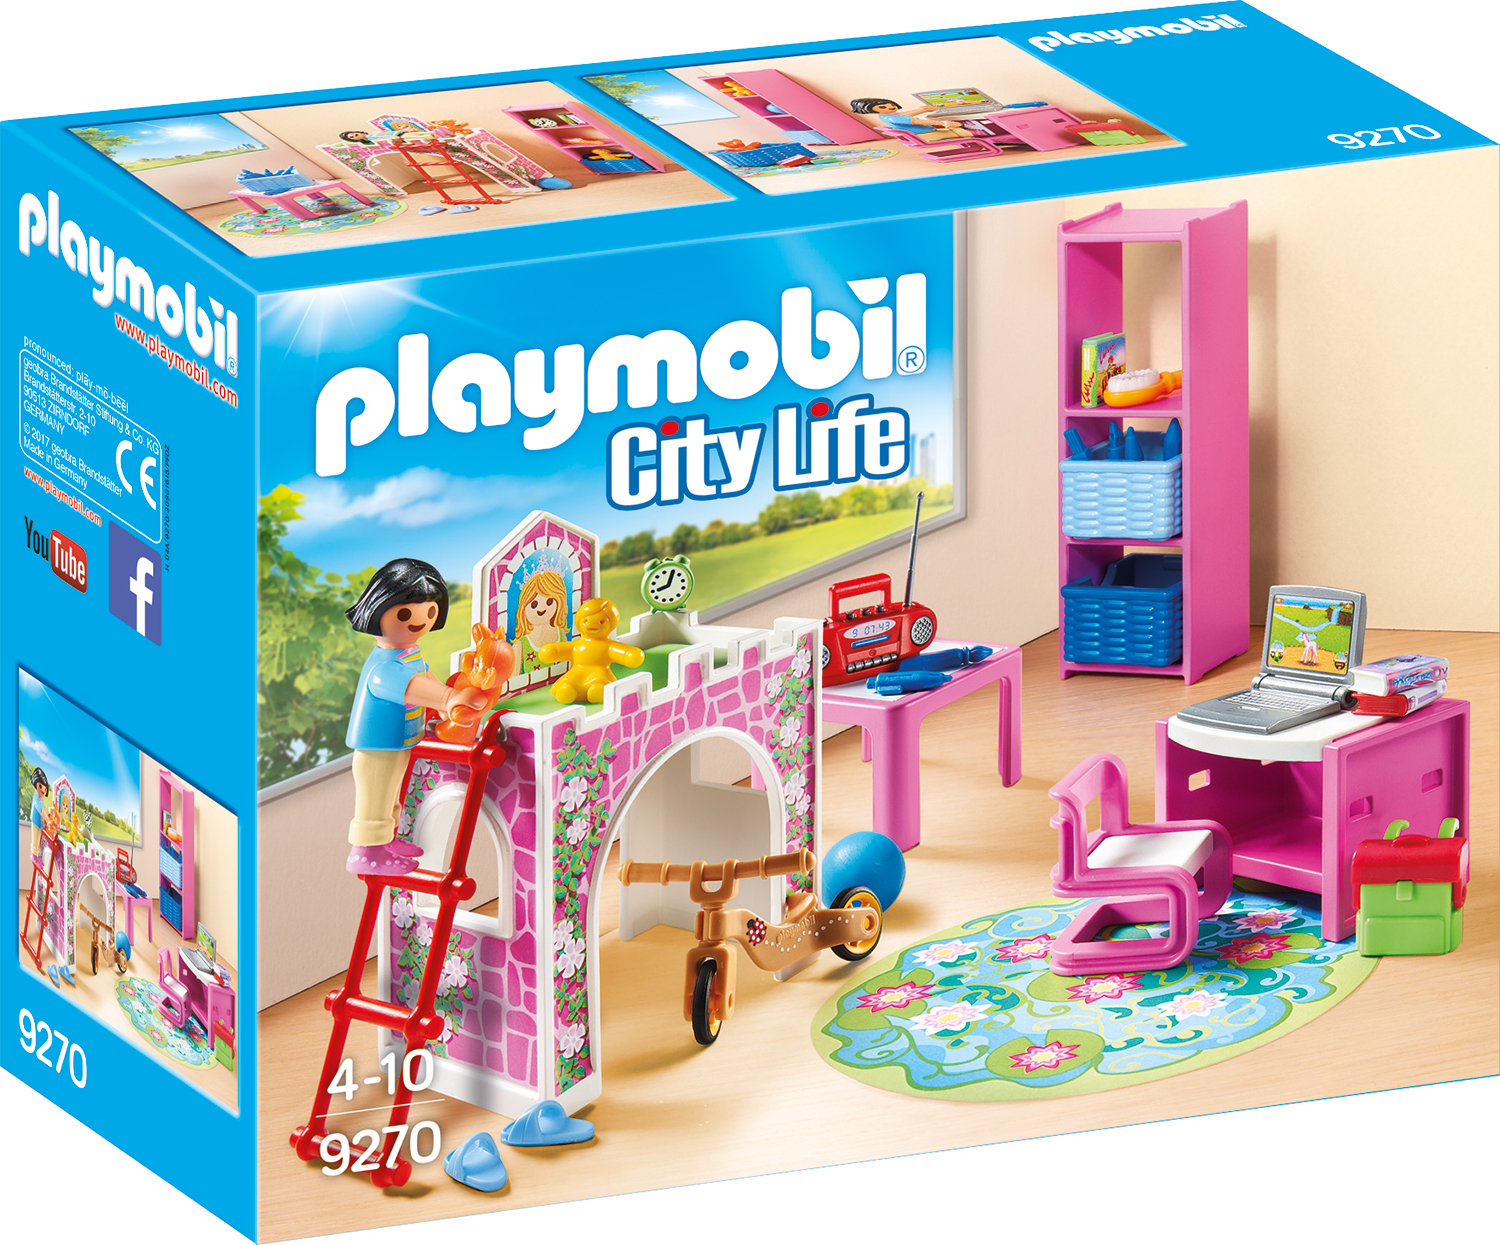 Playmobil das sind die trends 2017 mytoys blog for Kinderzimmer playmobil